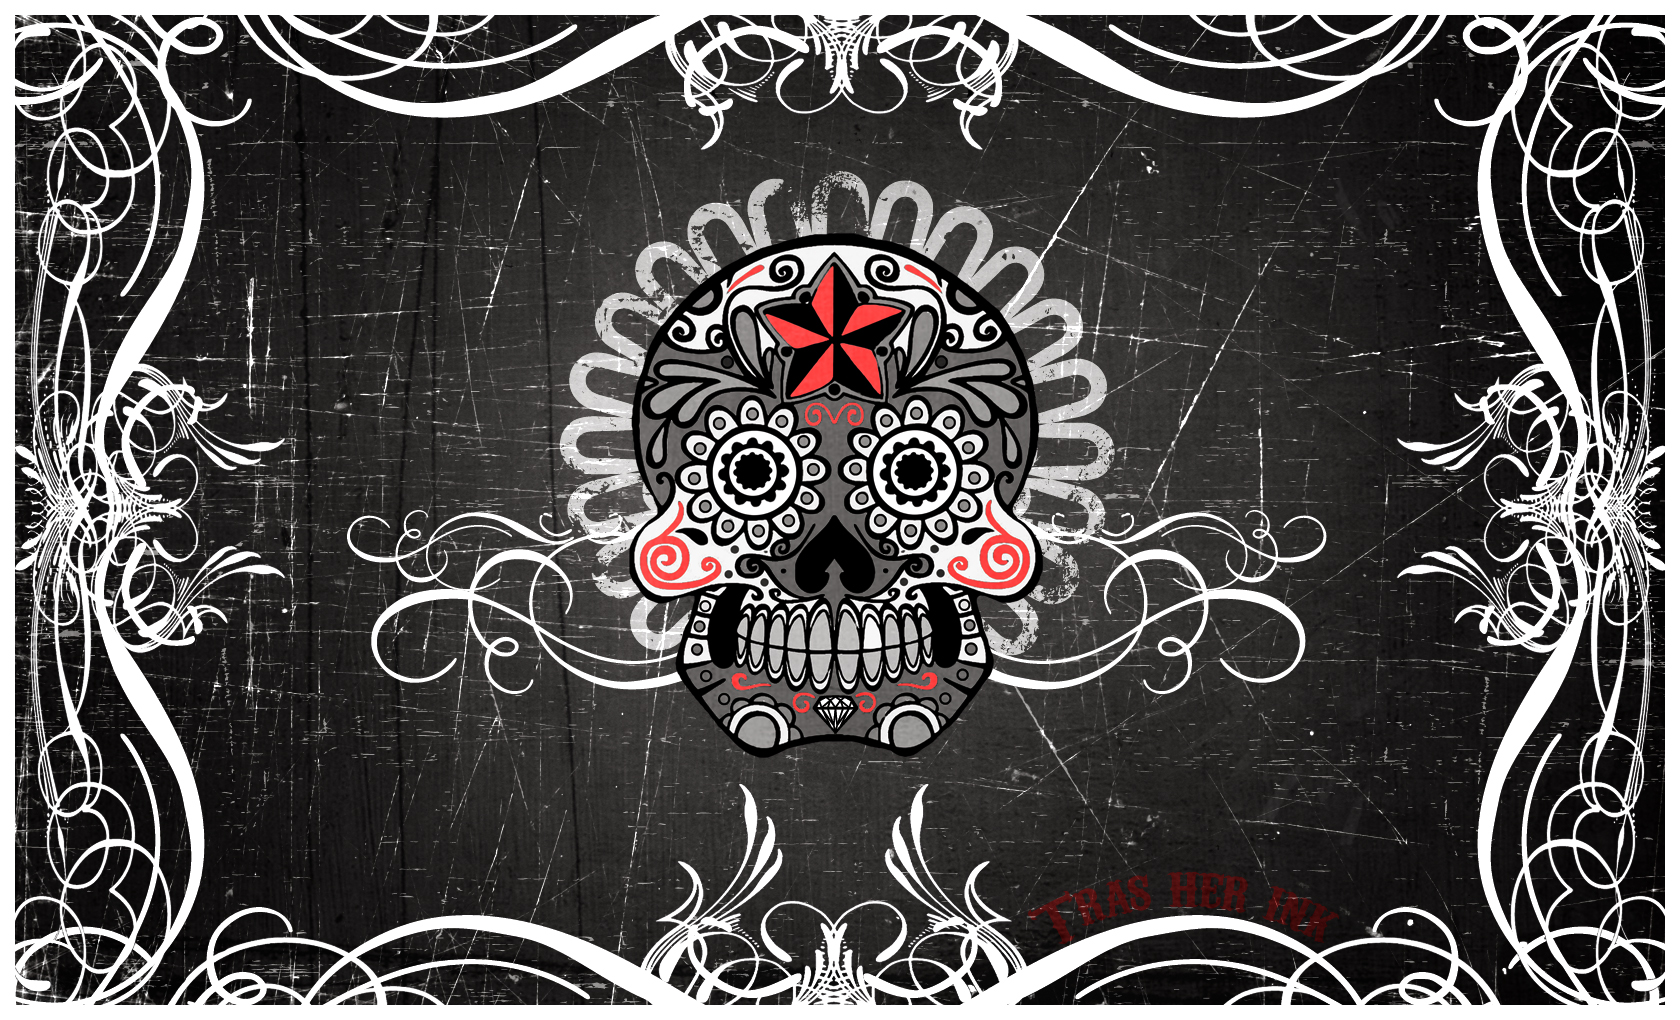 likes stuff so I will be collecting all the skull stuff 1680x1020